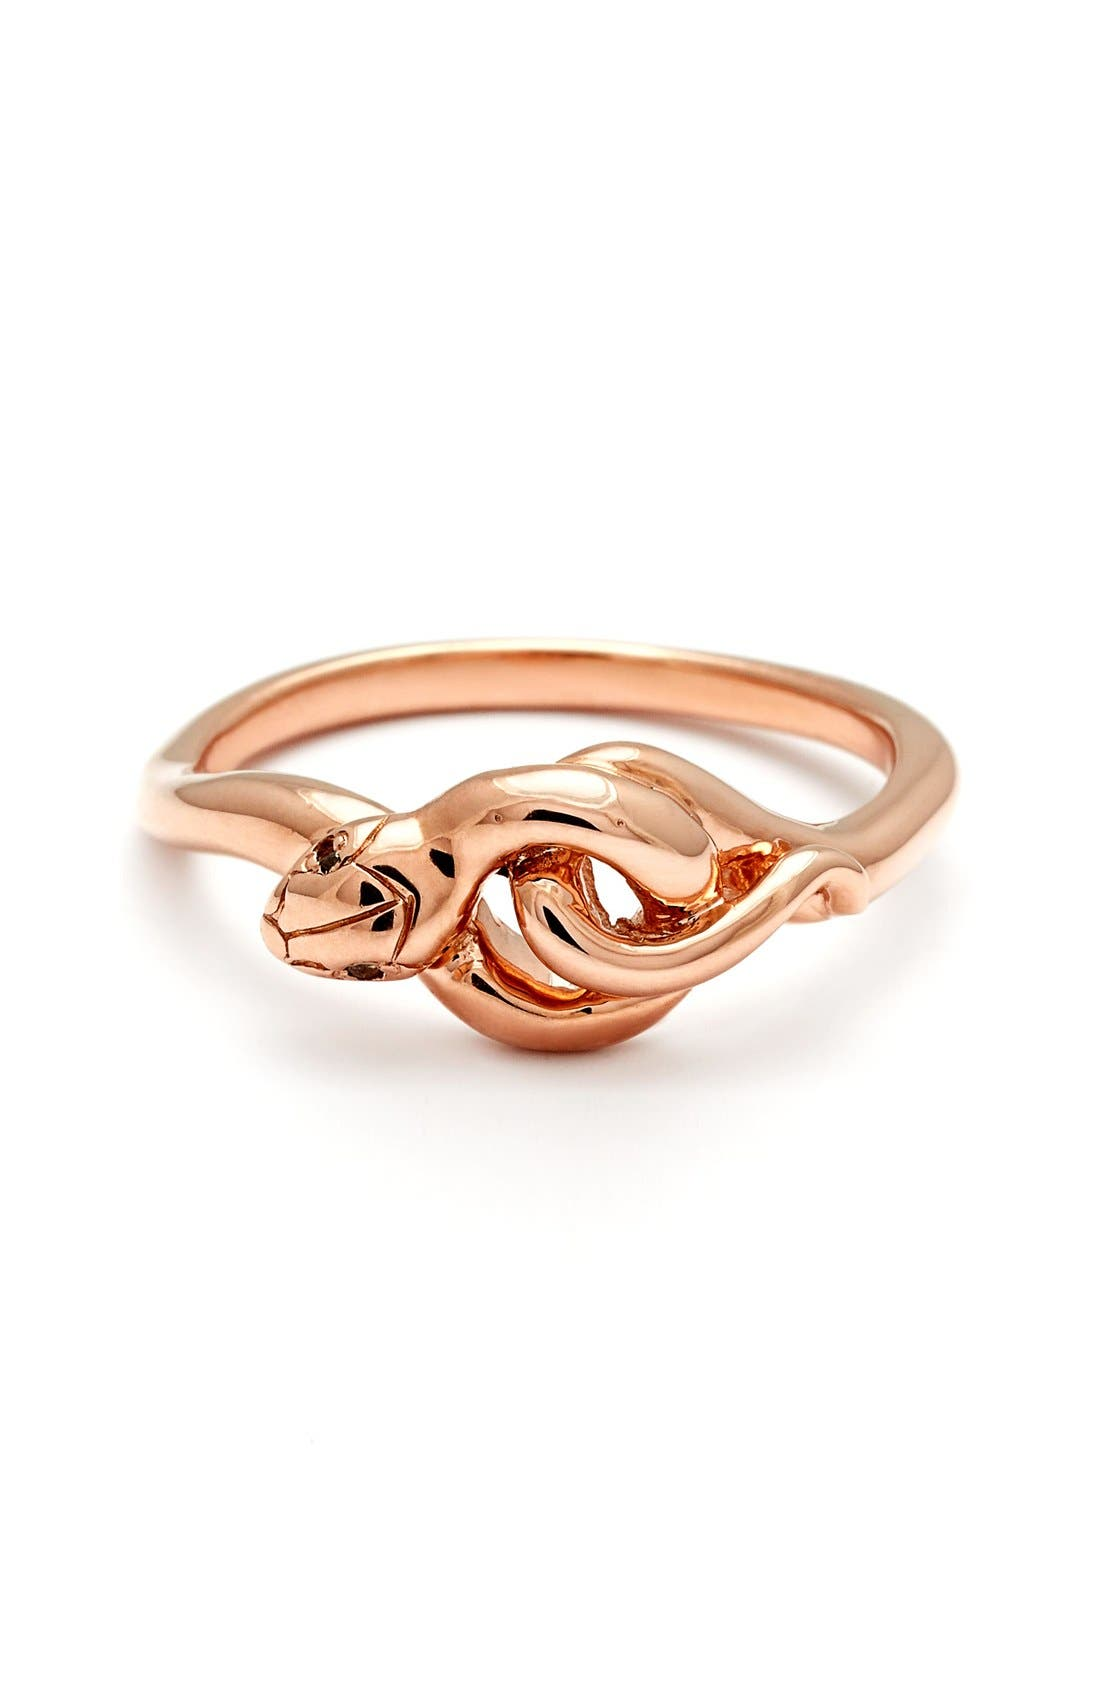 Anna Sheffield 'Small Serpent' Rose Gold Ring